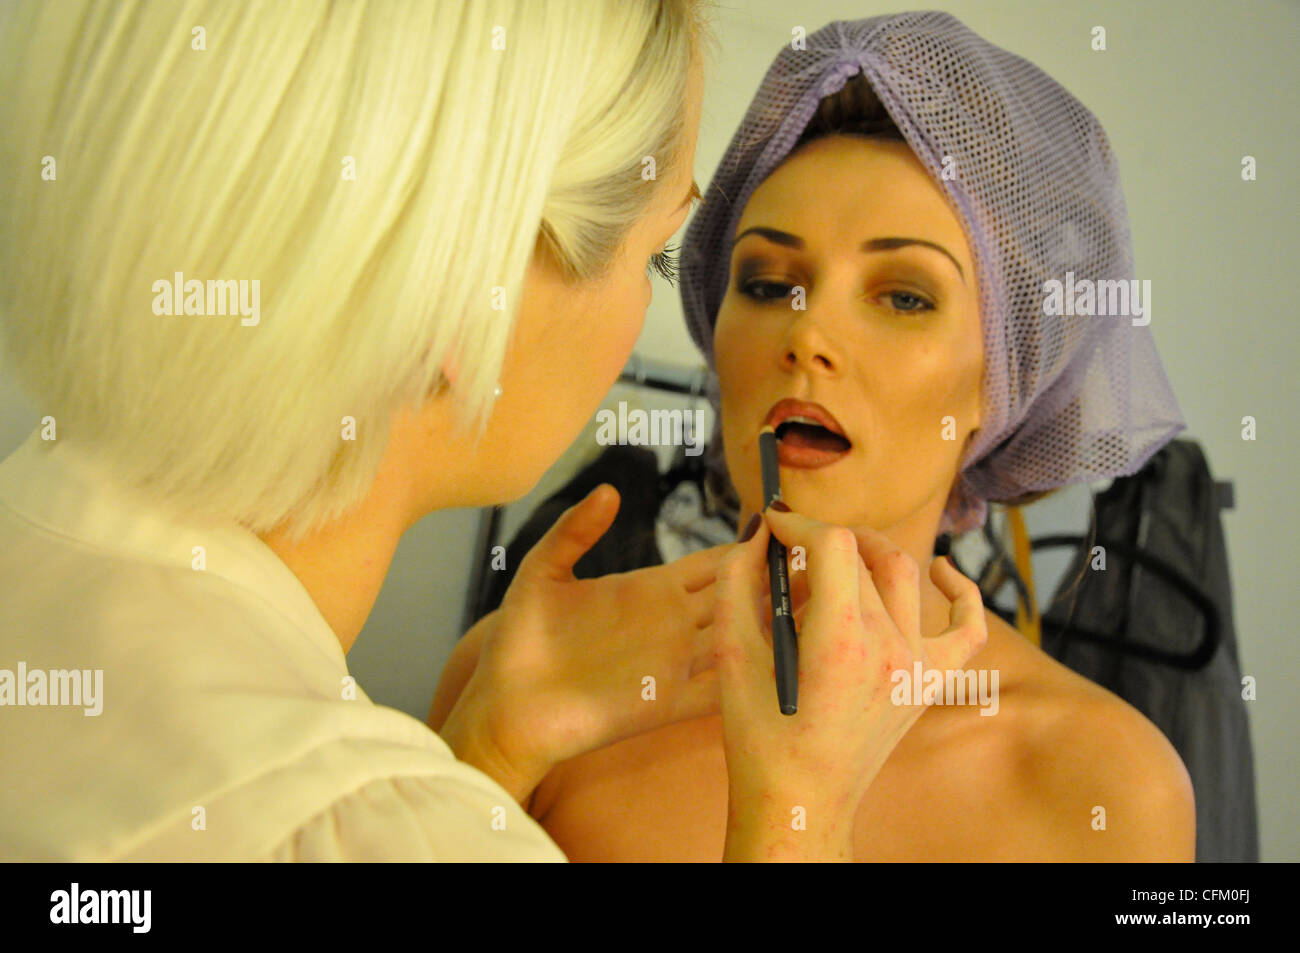 Hair & Make up models & stylists for a photo shoot - Stock Image